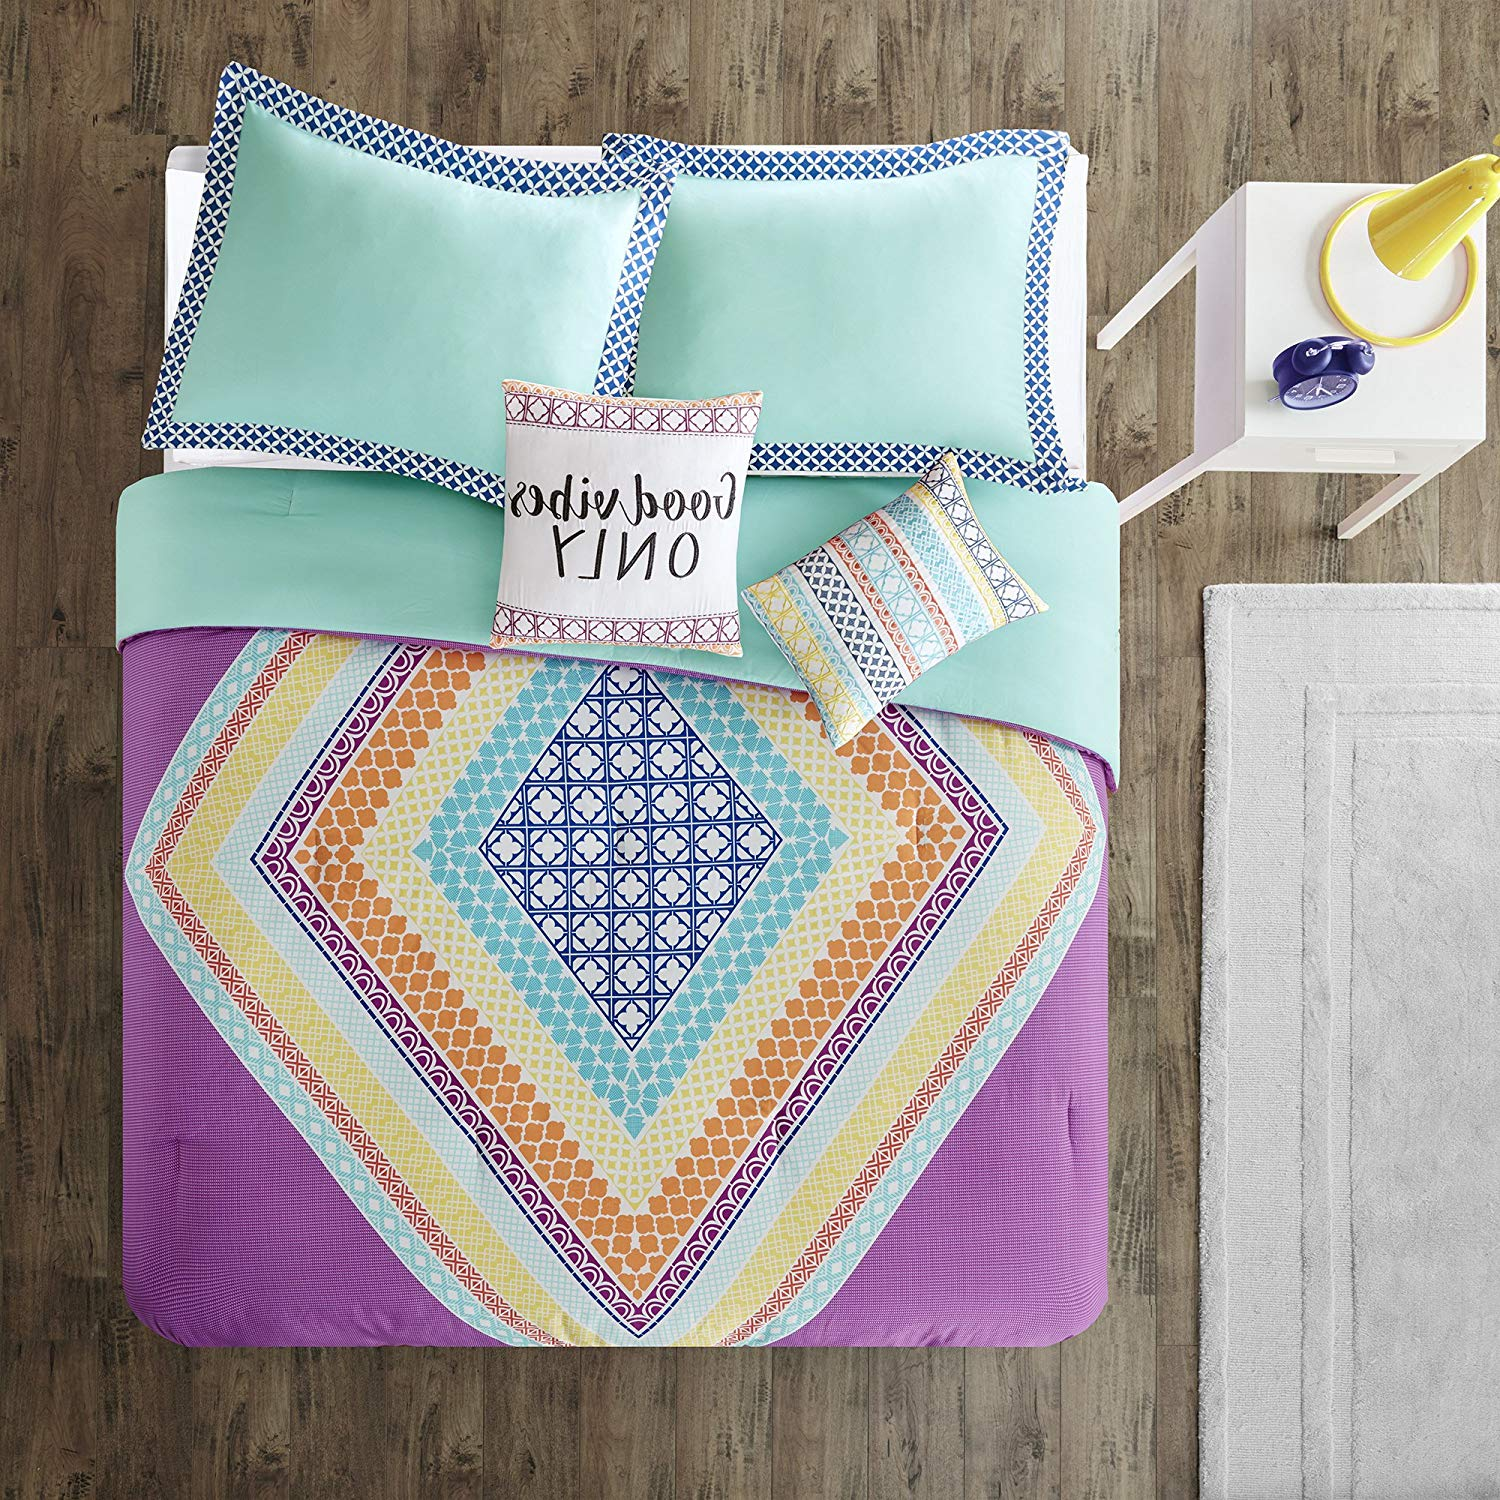 5 Piece Purple Teal Orange Yellow Good Vibes Boho Chic Themed Comforter Full Queen Set, Beautiful Pastel Bohemian Motifs Bedding, Vibrant Oversized Diamond Motif Theme Pattern, Microfiber